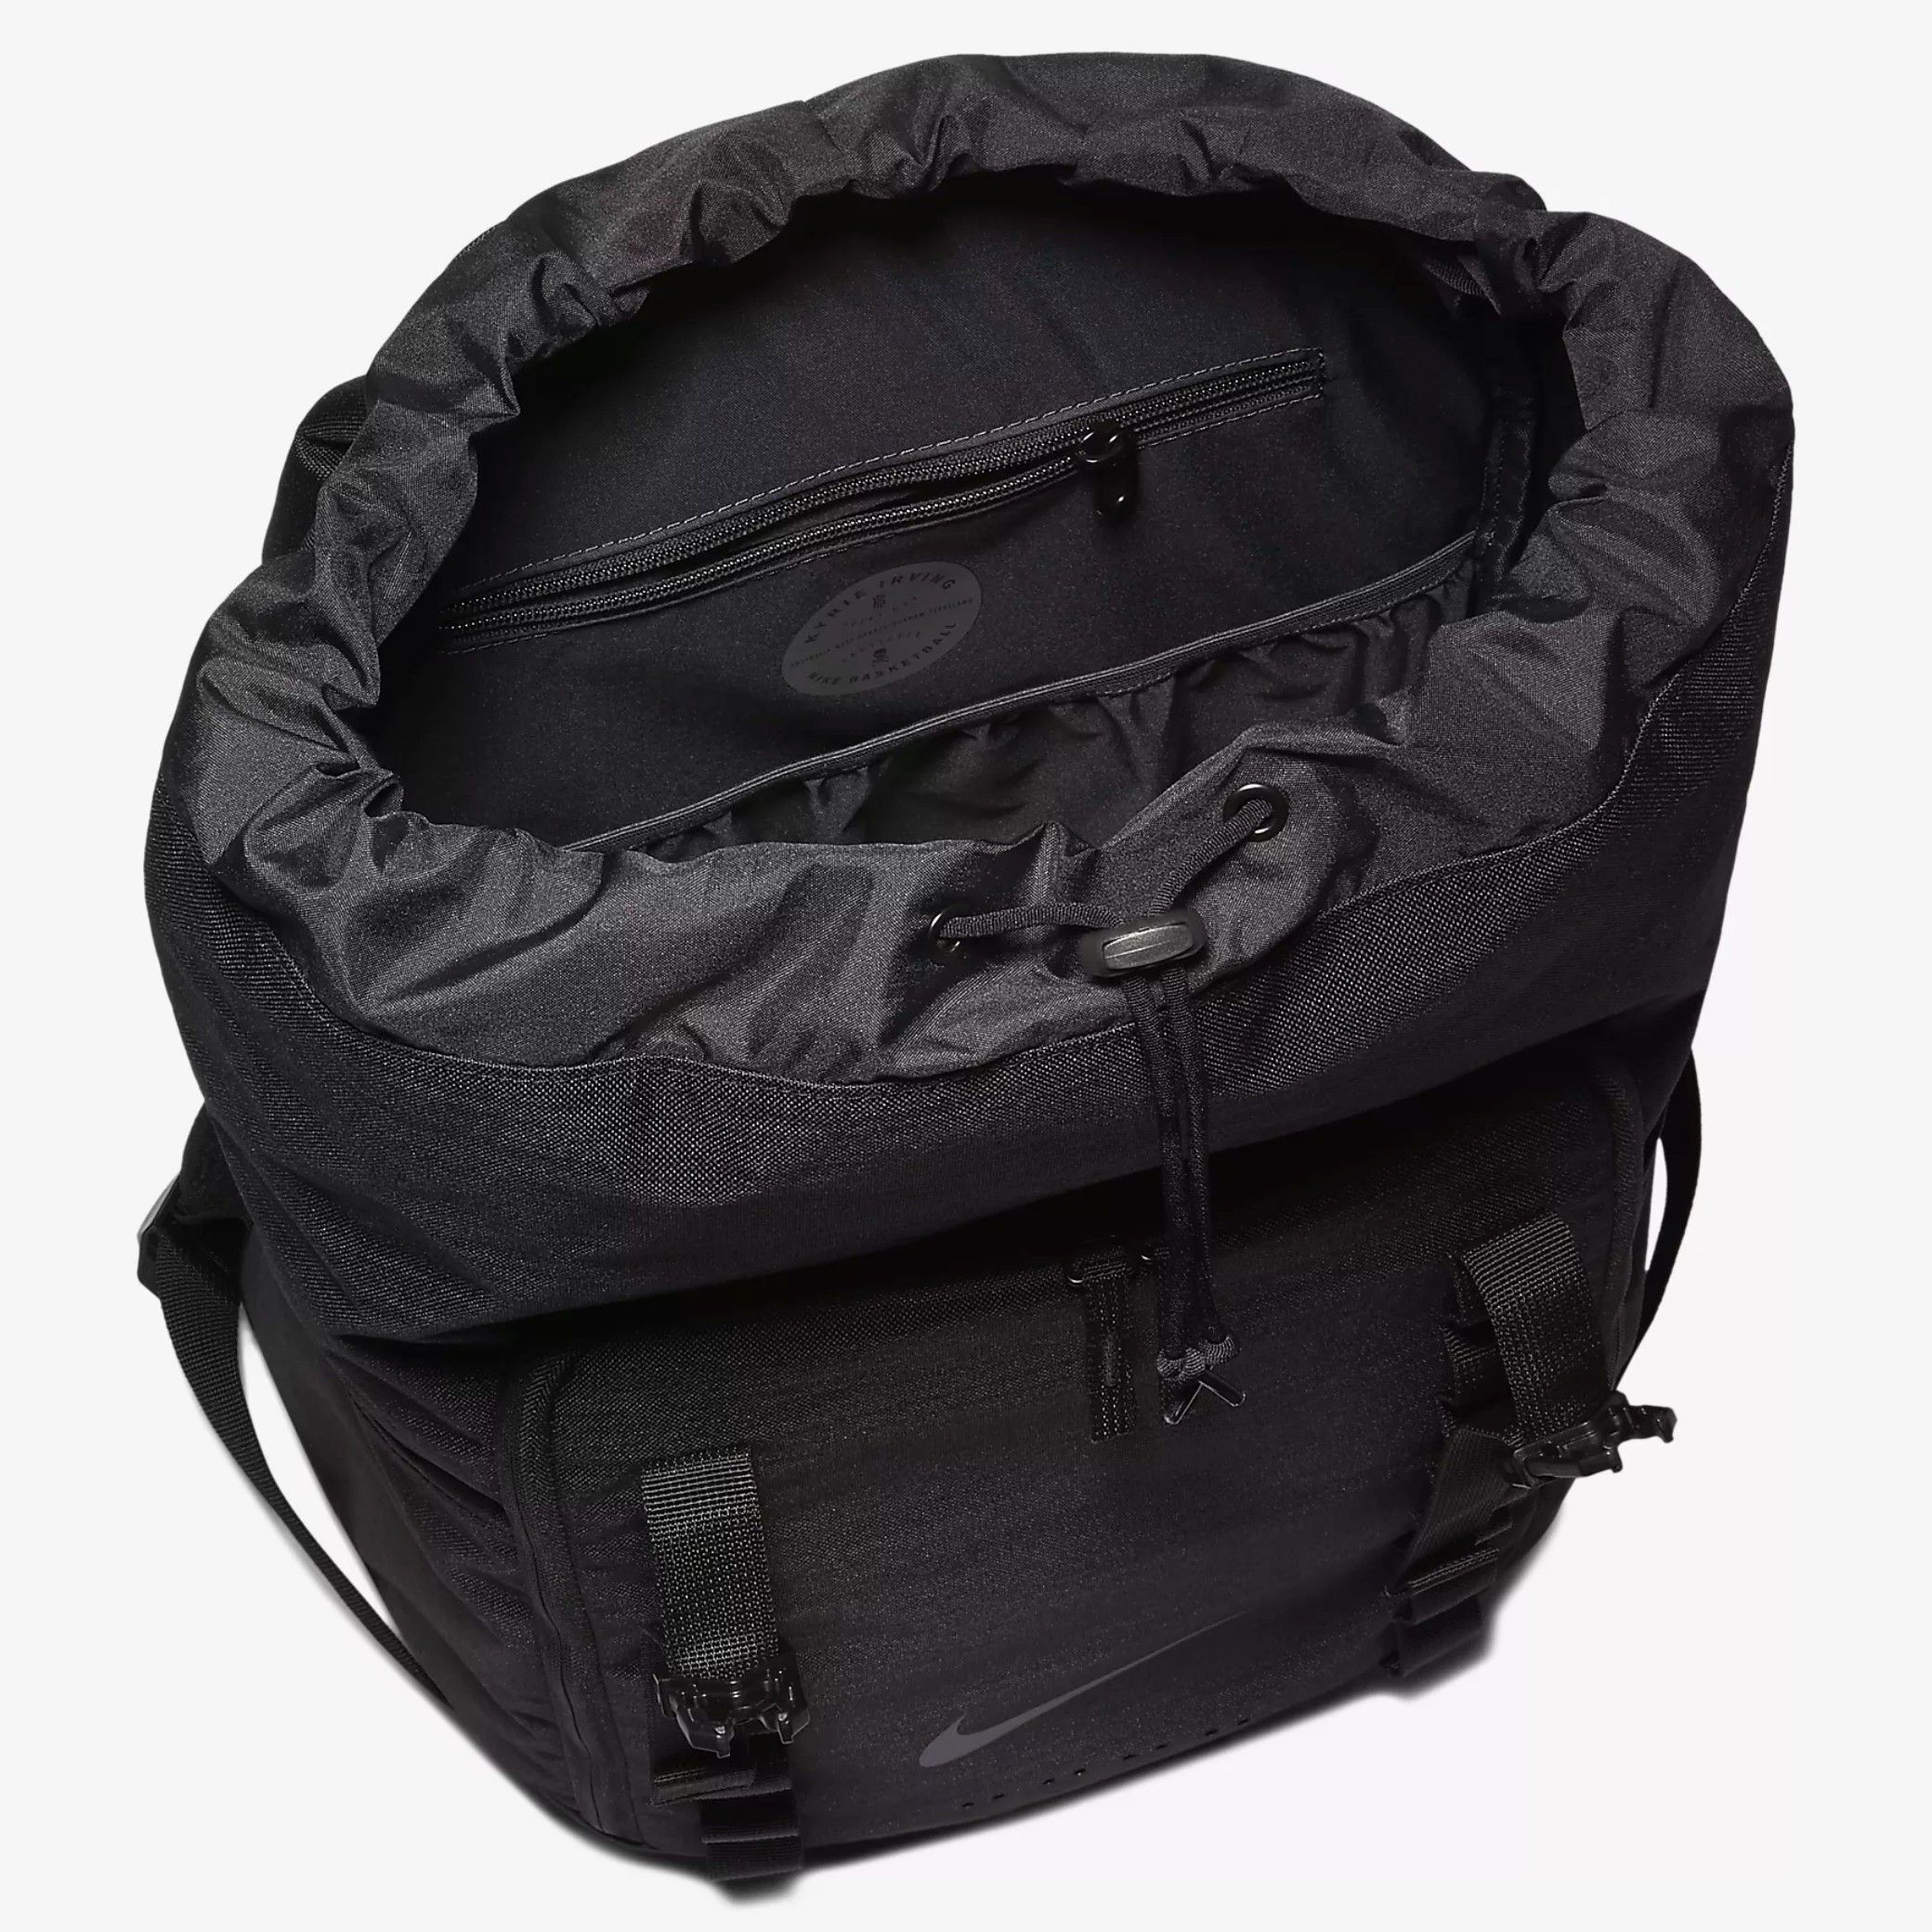 0eab0ea5f5e2 Nike Black Kyrie Basketball Backpack - Buy Nike Black Kyrie Basketball  Backpack Online at Low Price - Snapdeal